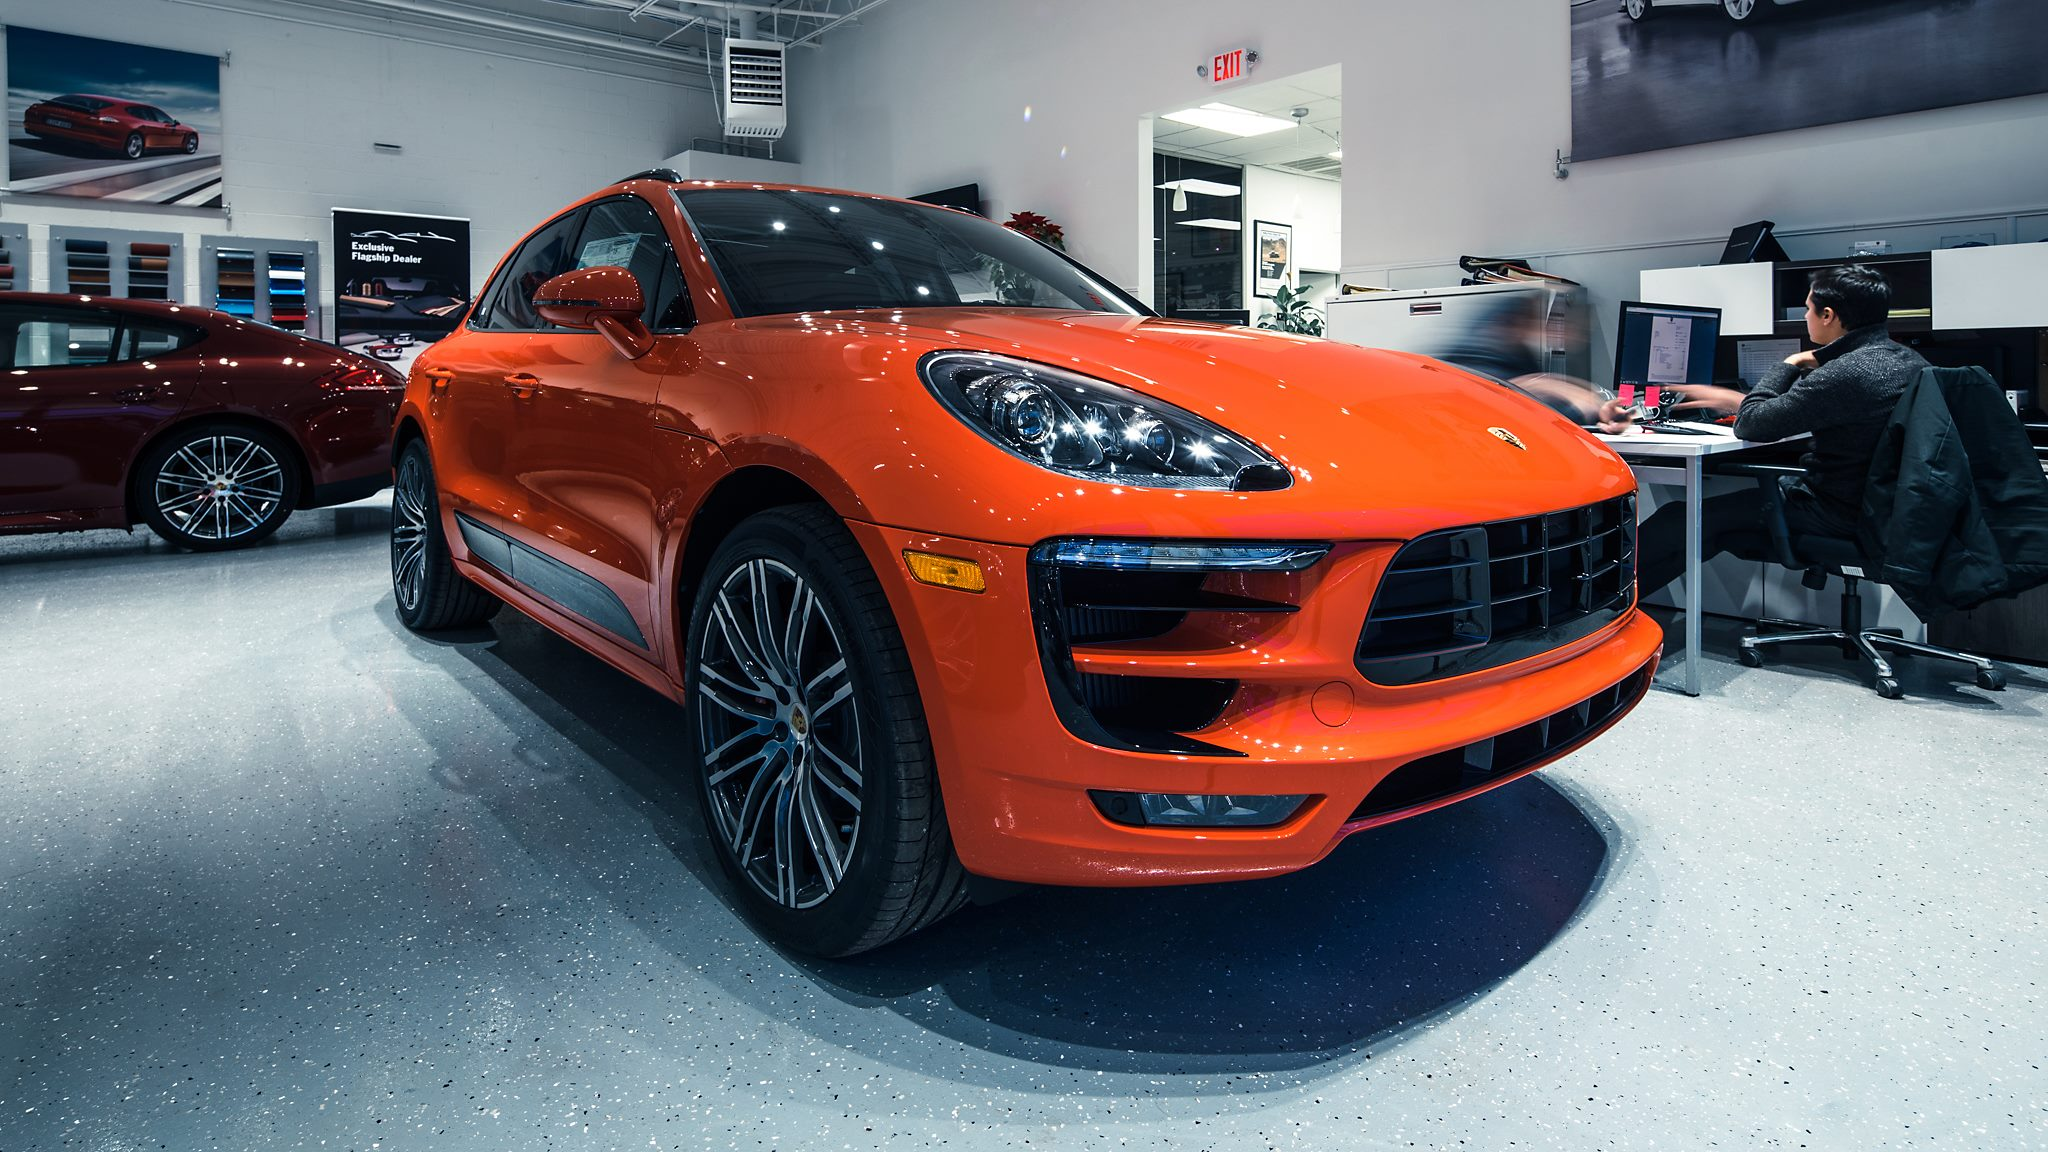 2018 porsche macan red. Simple Red 8 Photos Throughout 2018 Porsche Macan Red Z